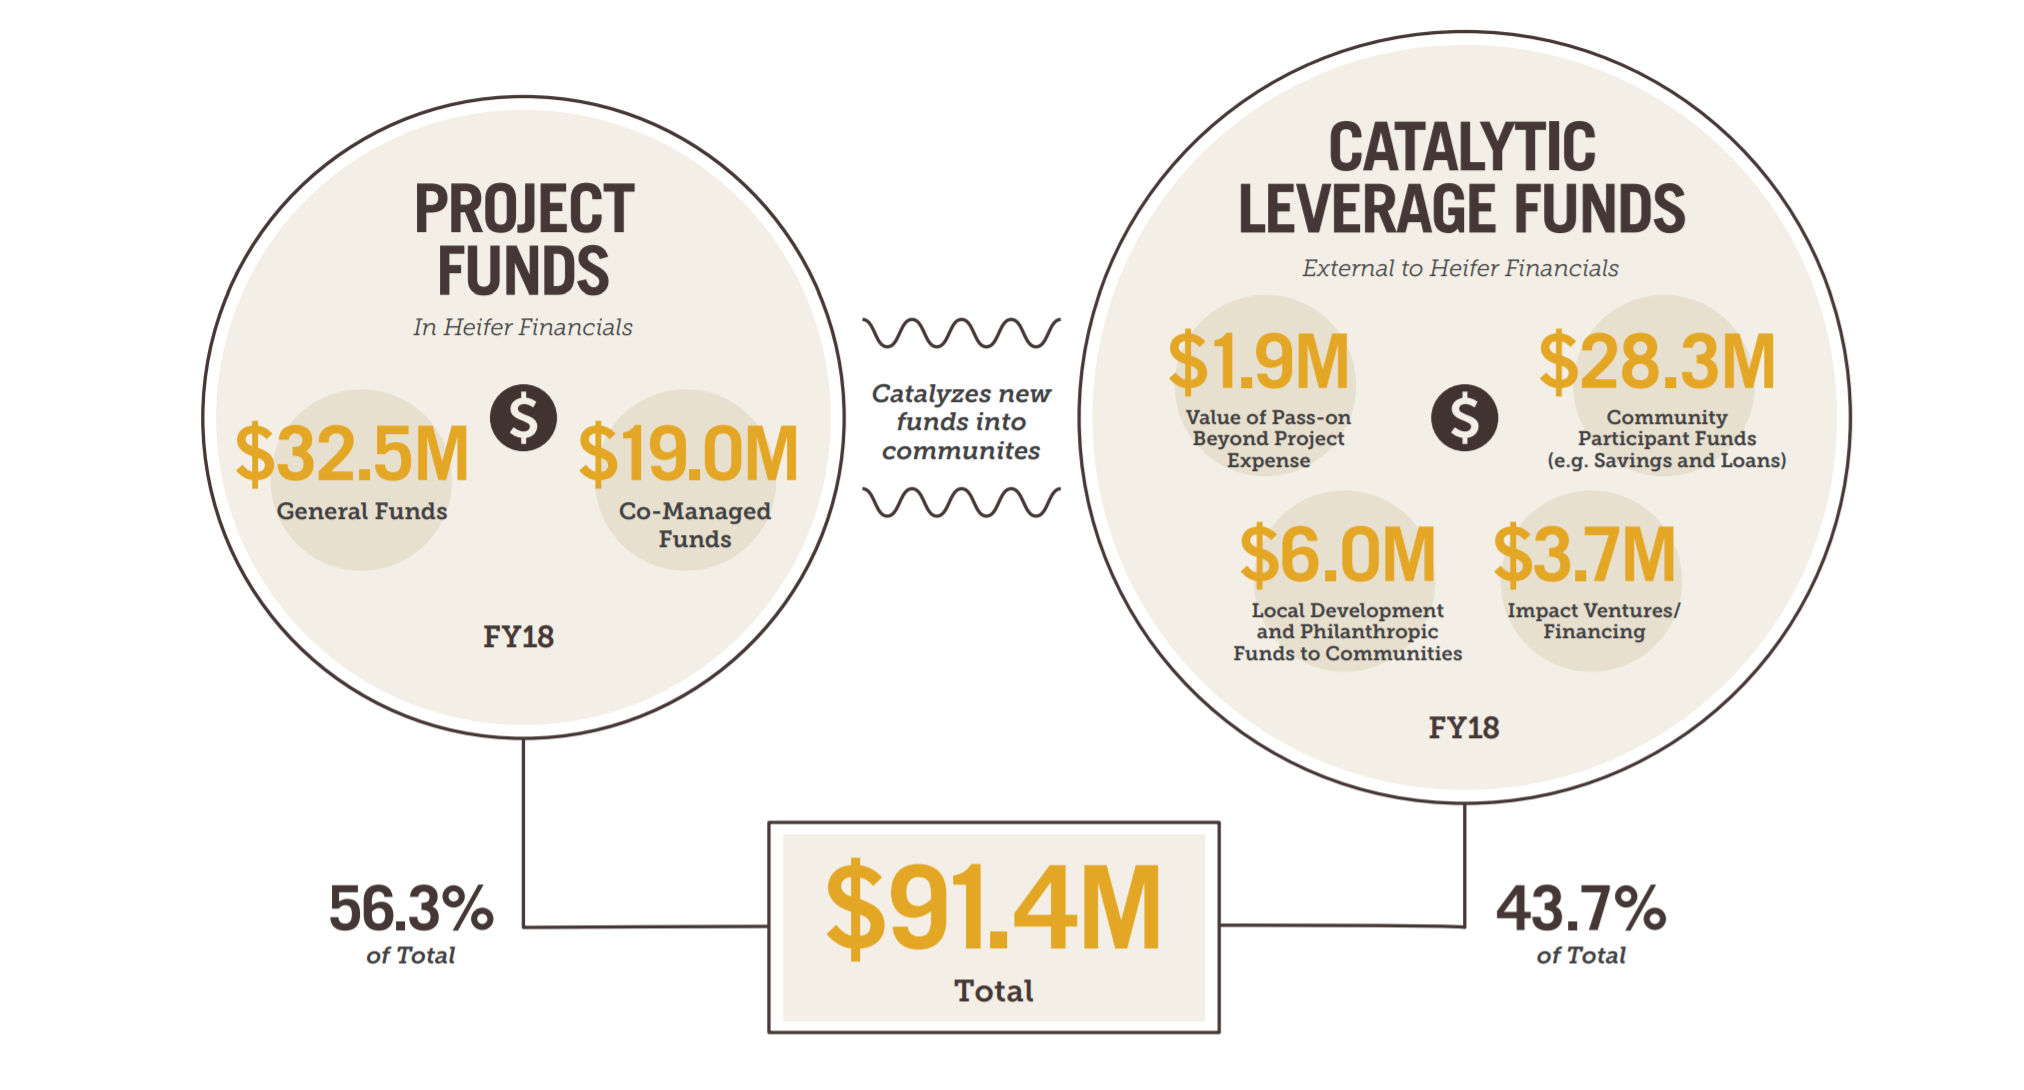 Infographic. Project funds of 32.5 million in general funds and 19 million in co-managed funds make up the Project funds and 56.3% of total funds. These are converted into Catalytic Funds, which make up 43.7% of total funds and include 1.9 million in value of pass-on beyond the project expense, 28.3 million in community participatory funds, 6 million in local development and philanthropic funds for communities, and 3.7 million in impact ventures and financing